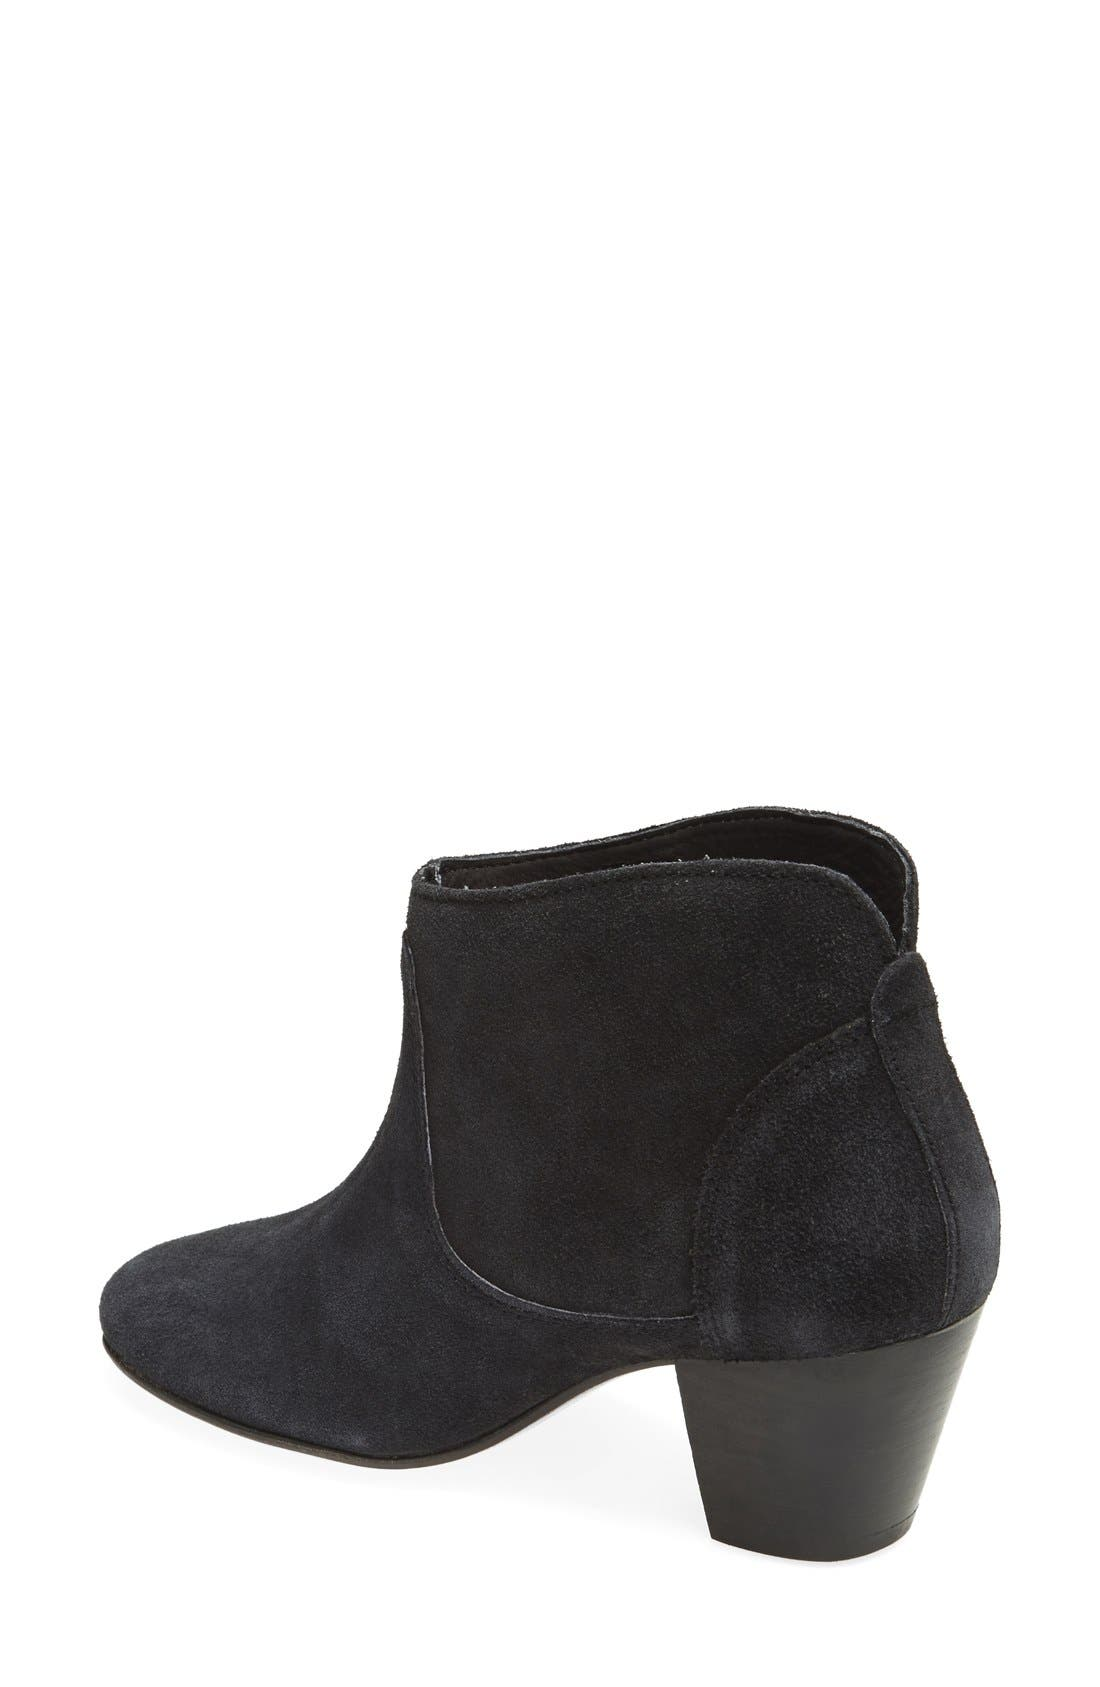 'Kiver' Suede Bootie,                             Alternate thumbnail 3, color,                             001